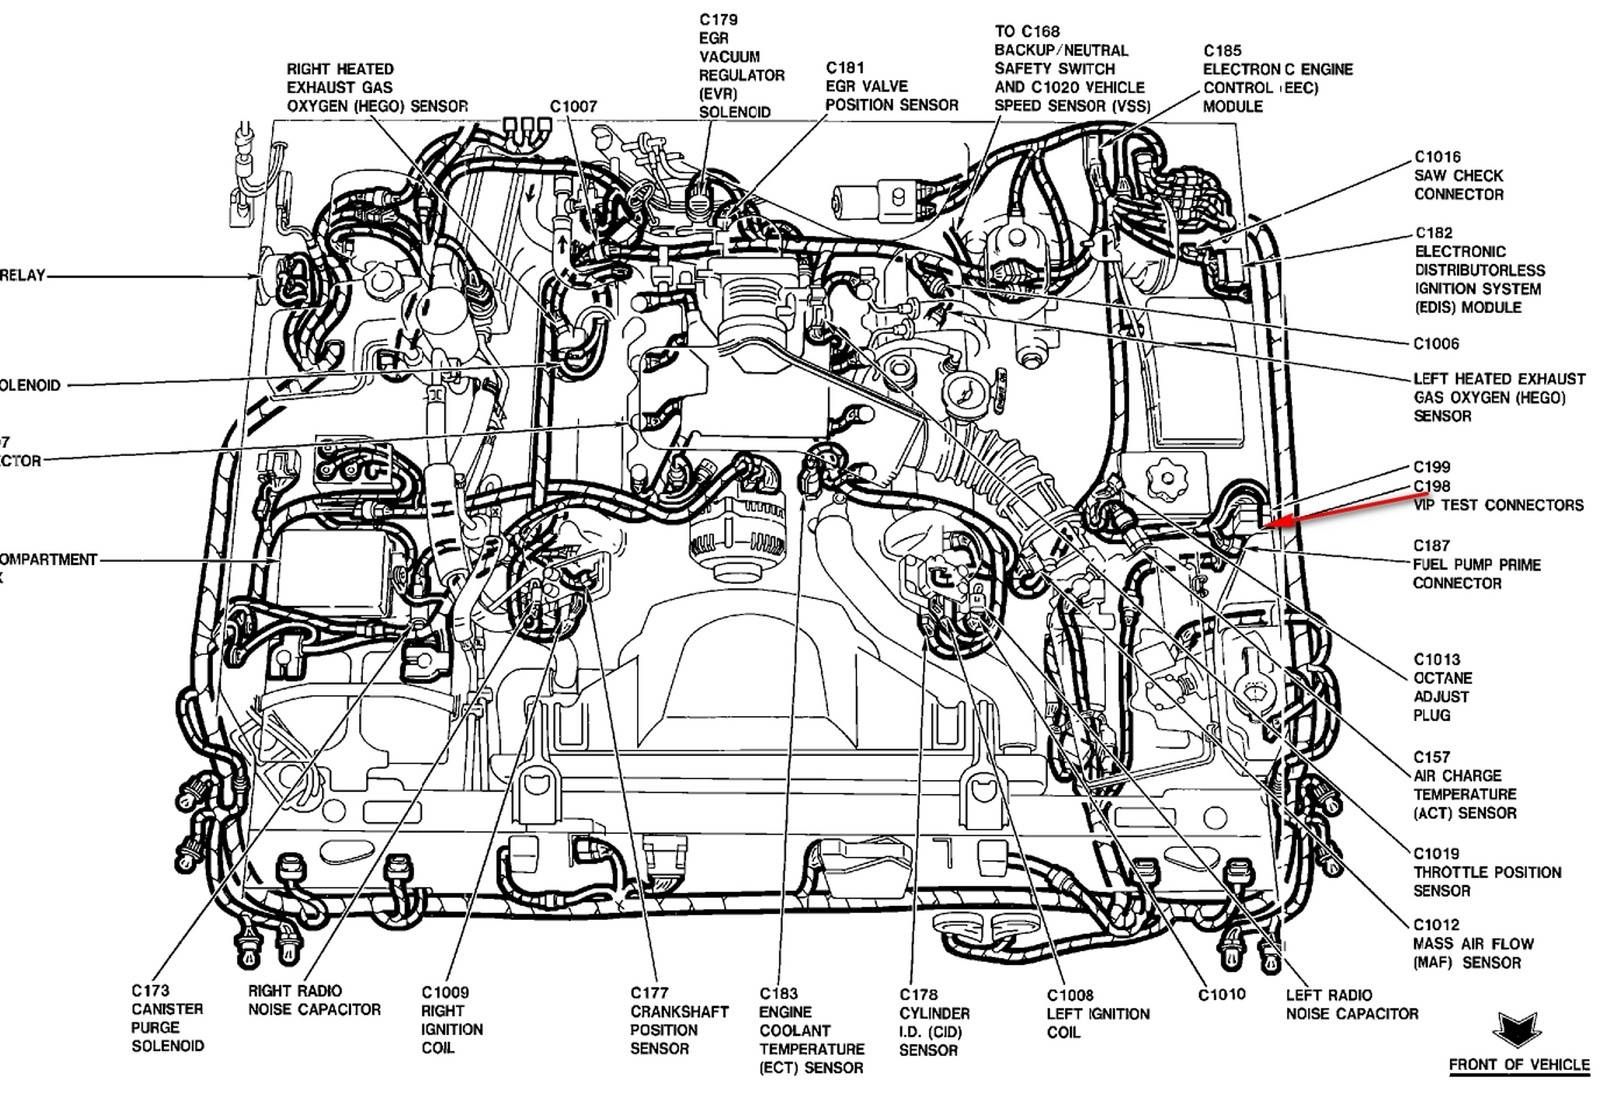 1991 mercury grand marquis engine diagram diy wiring diagrams u2022 rh aviomar co 1999 mercury grand marquis engine wiring diagram 2008 Mercury Grand Marquis Wiring Diagram